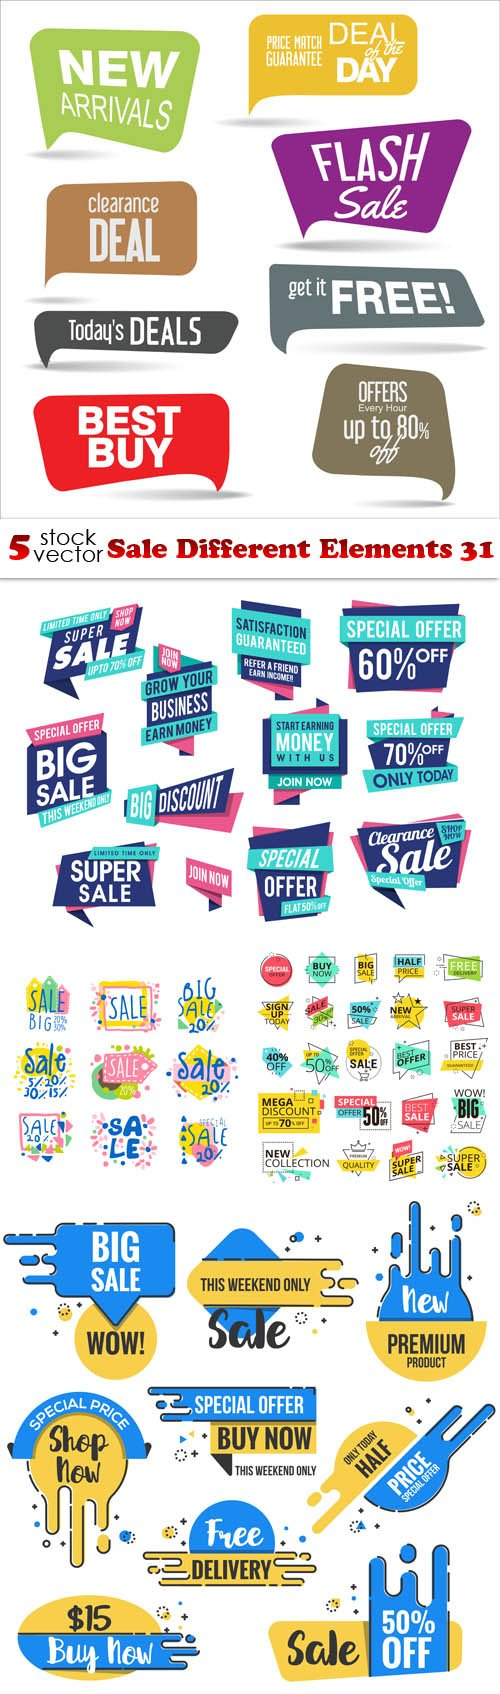 Vectors - Sale Different Elements 31